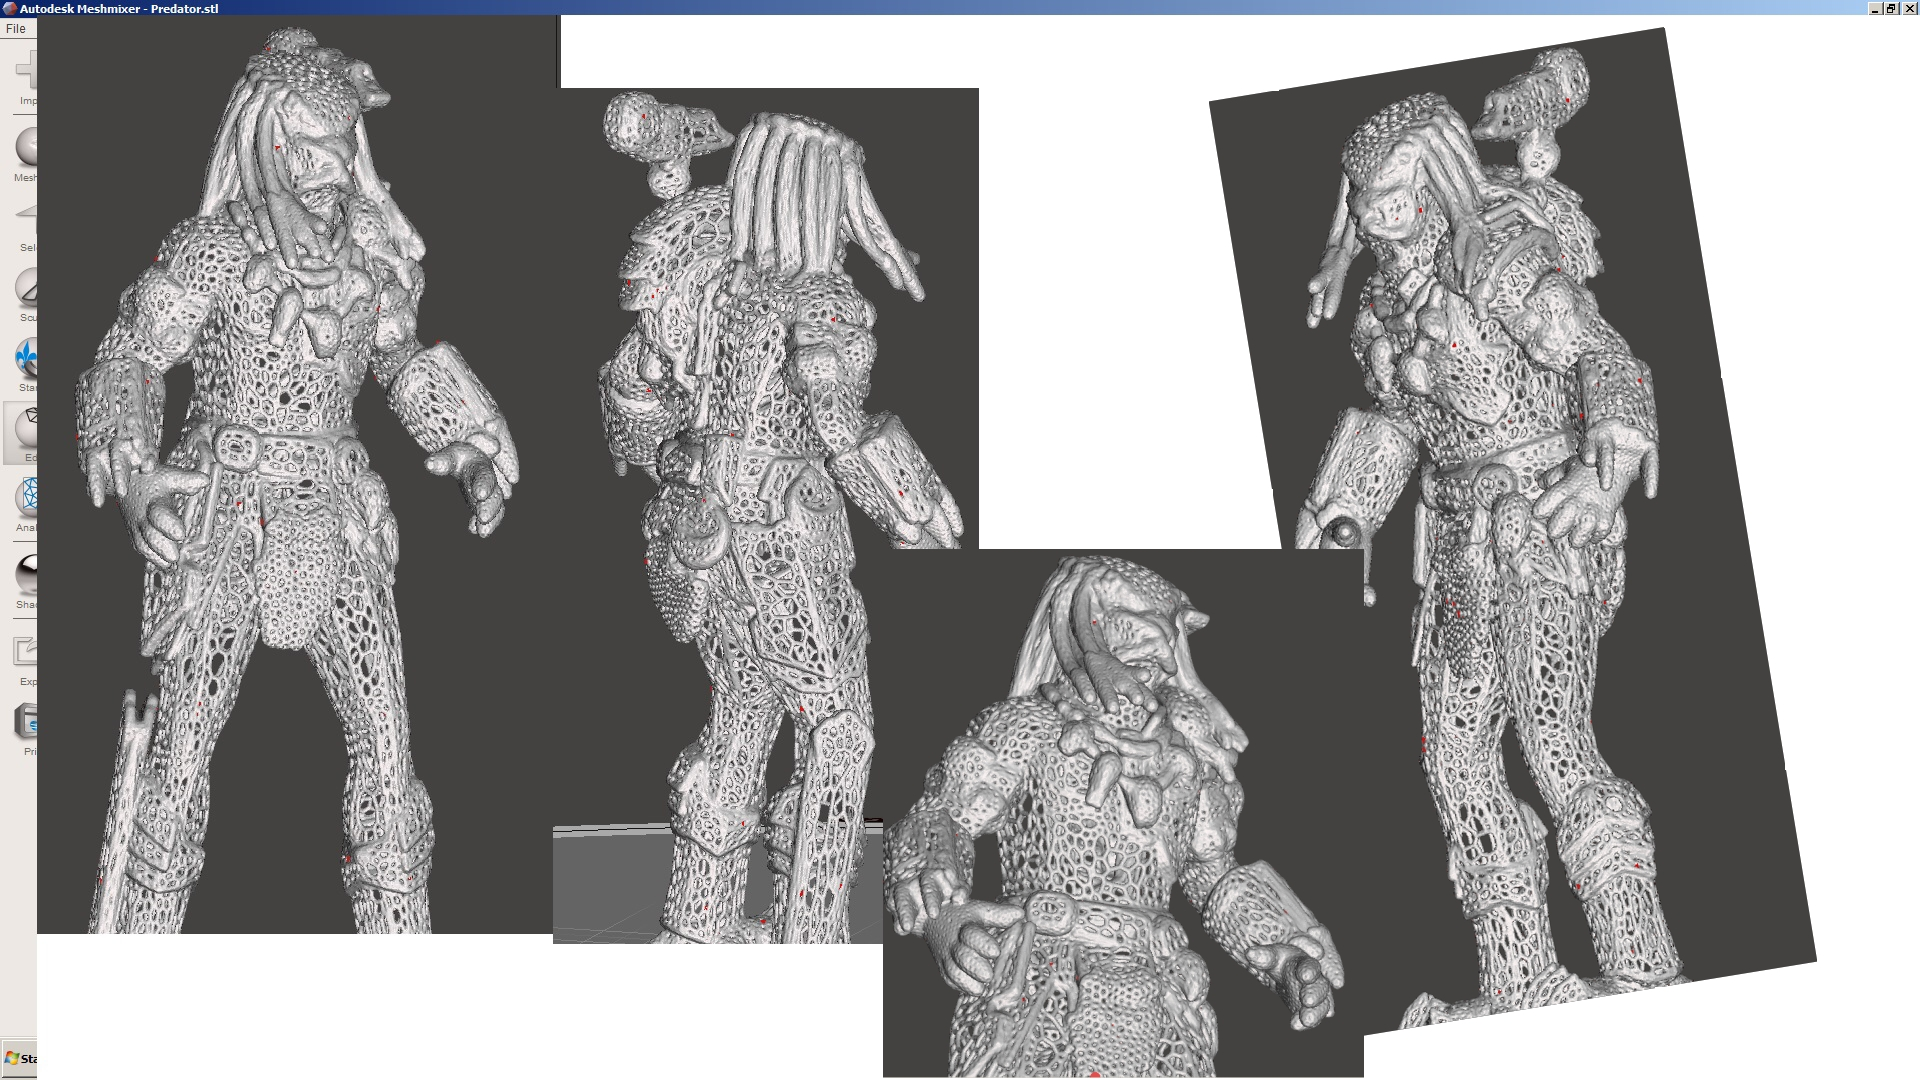 Predator HD voronoi by JiriStodulka - Thingiverse